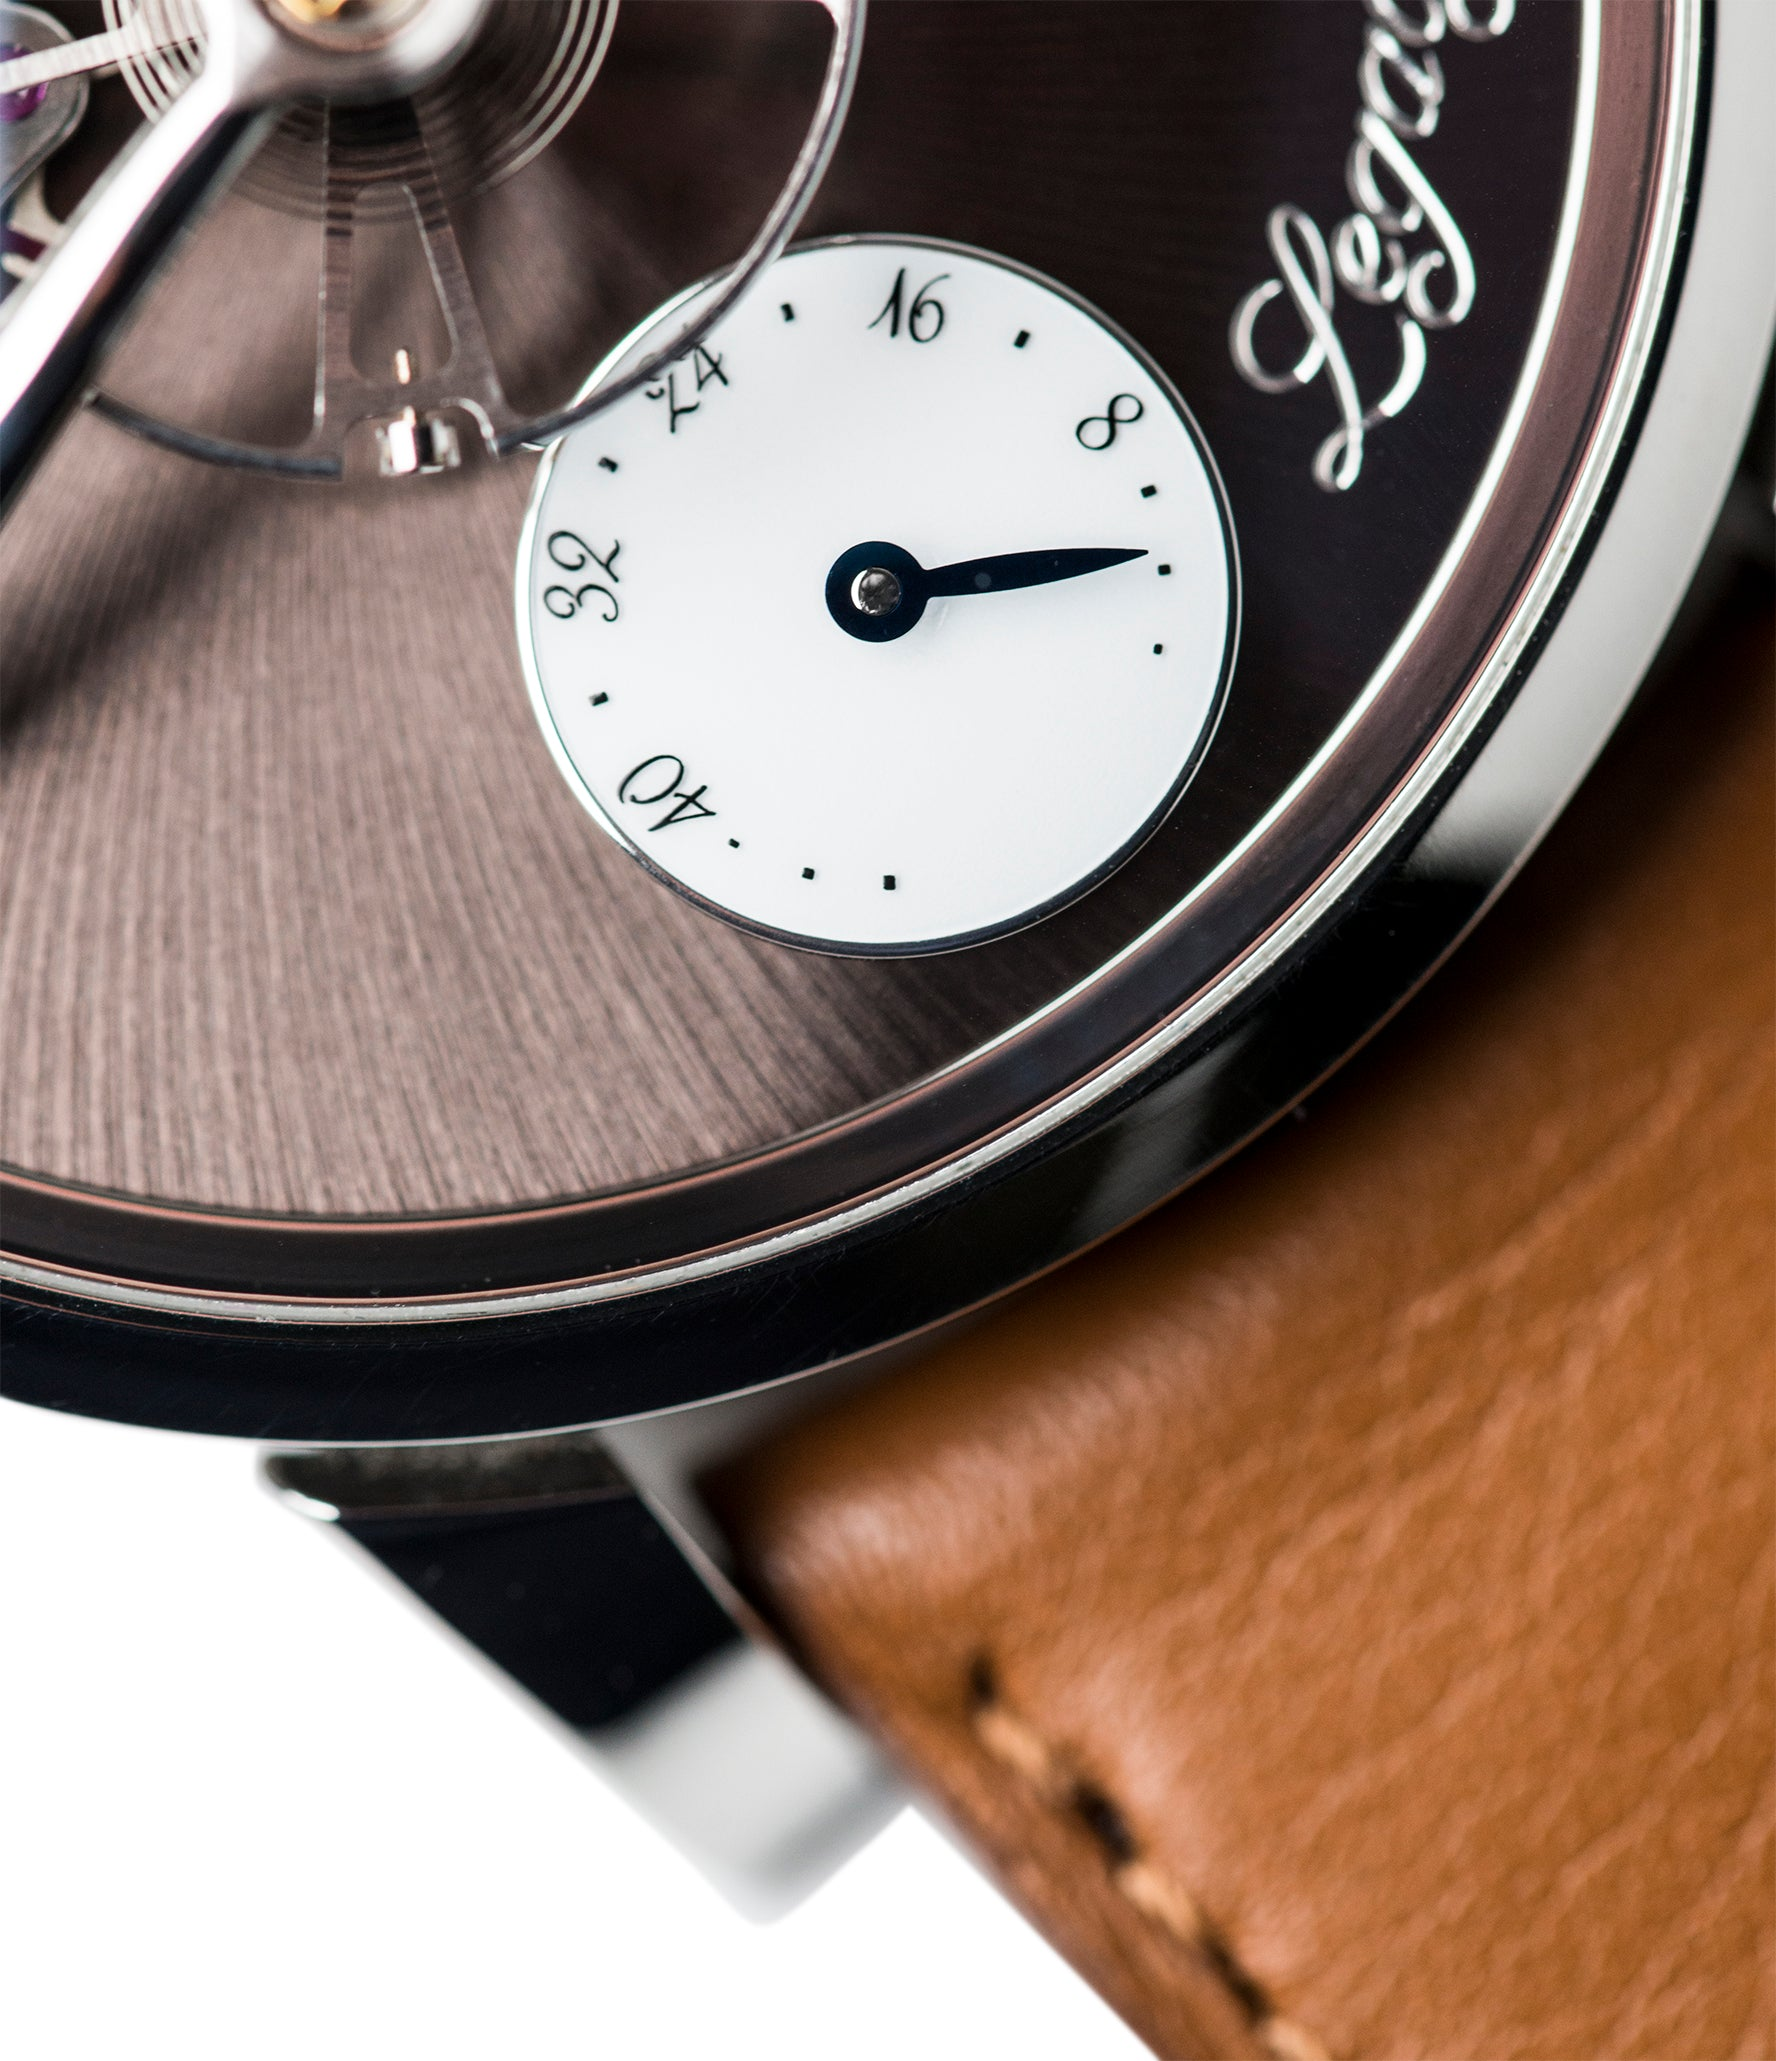 Hodinkee watch MB&F LM101 brown dial Limited Edition steel for sale online at A Collected Man London recommended retailer of independent watchmakers